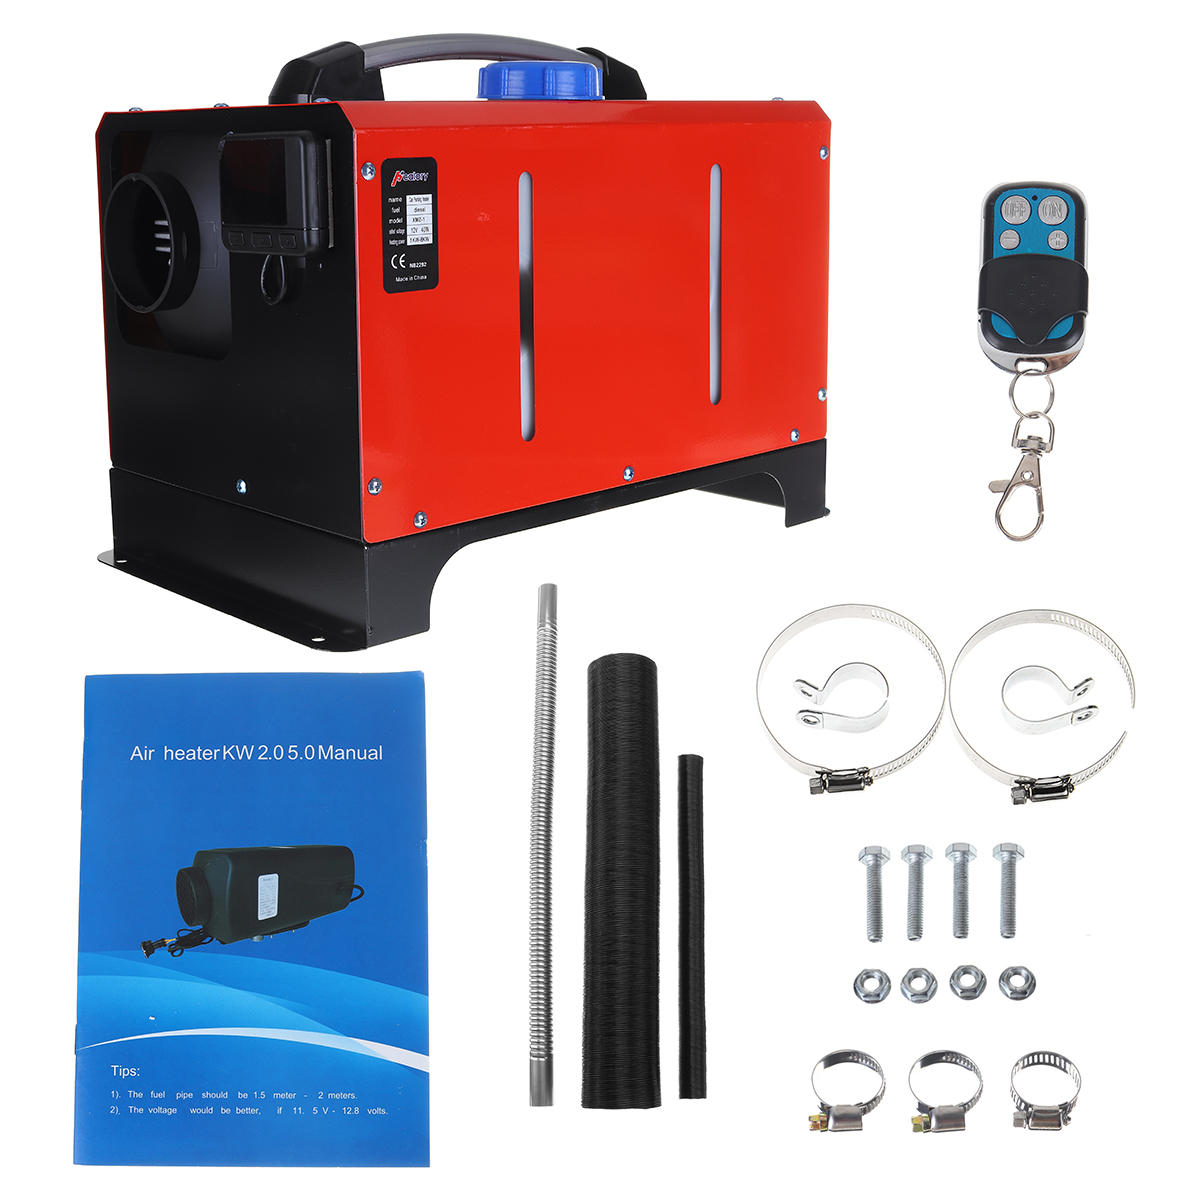 All in One 12V 8KW Diesel Air Heater Car Parking Heater Air Conditioner Machine Remote Control LCD Display for Truck Boat